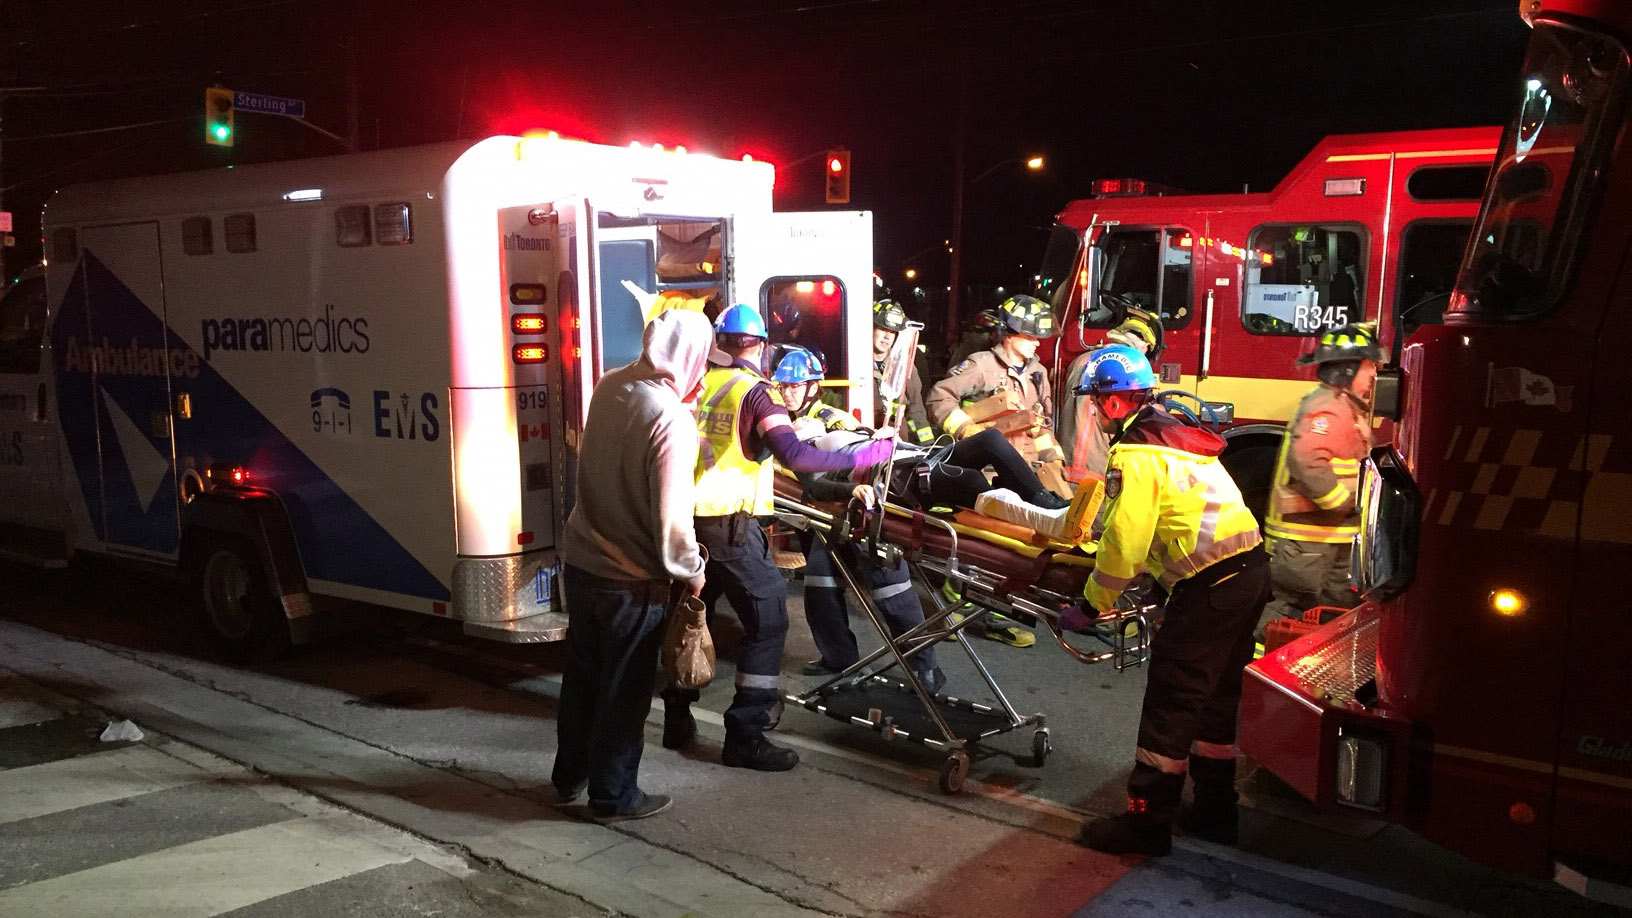 A woman is loaded into an ambulance after a car crash on Sept. 30, 2016. CITYNEWS/Bahaa Attia